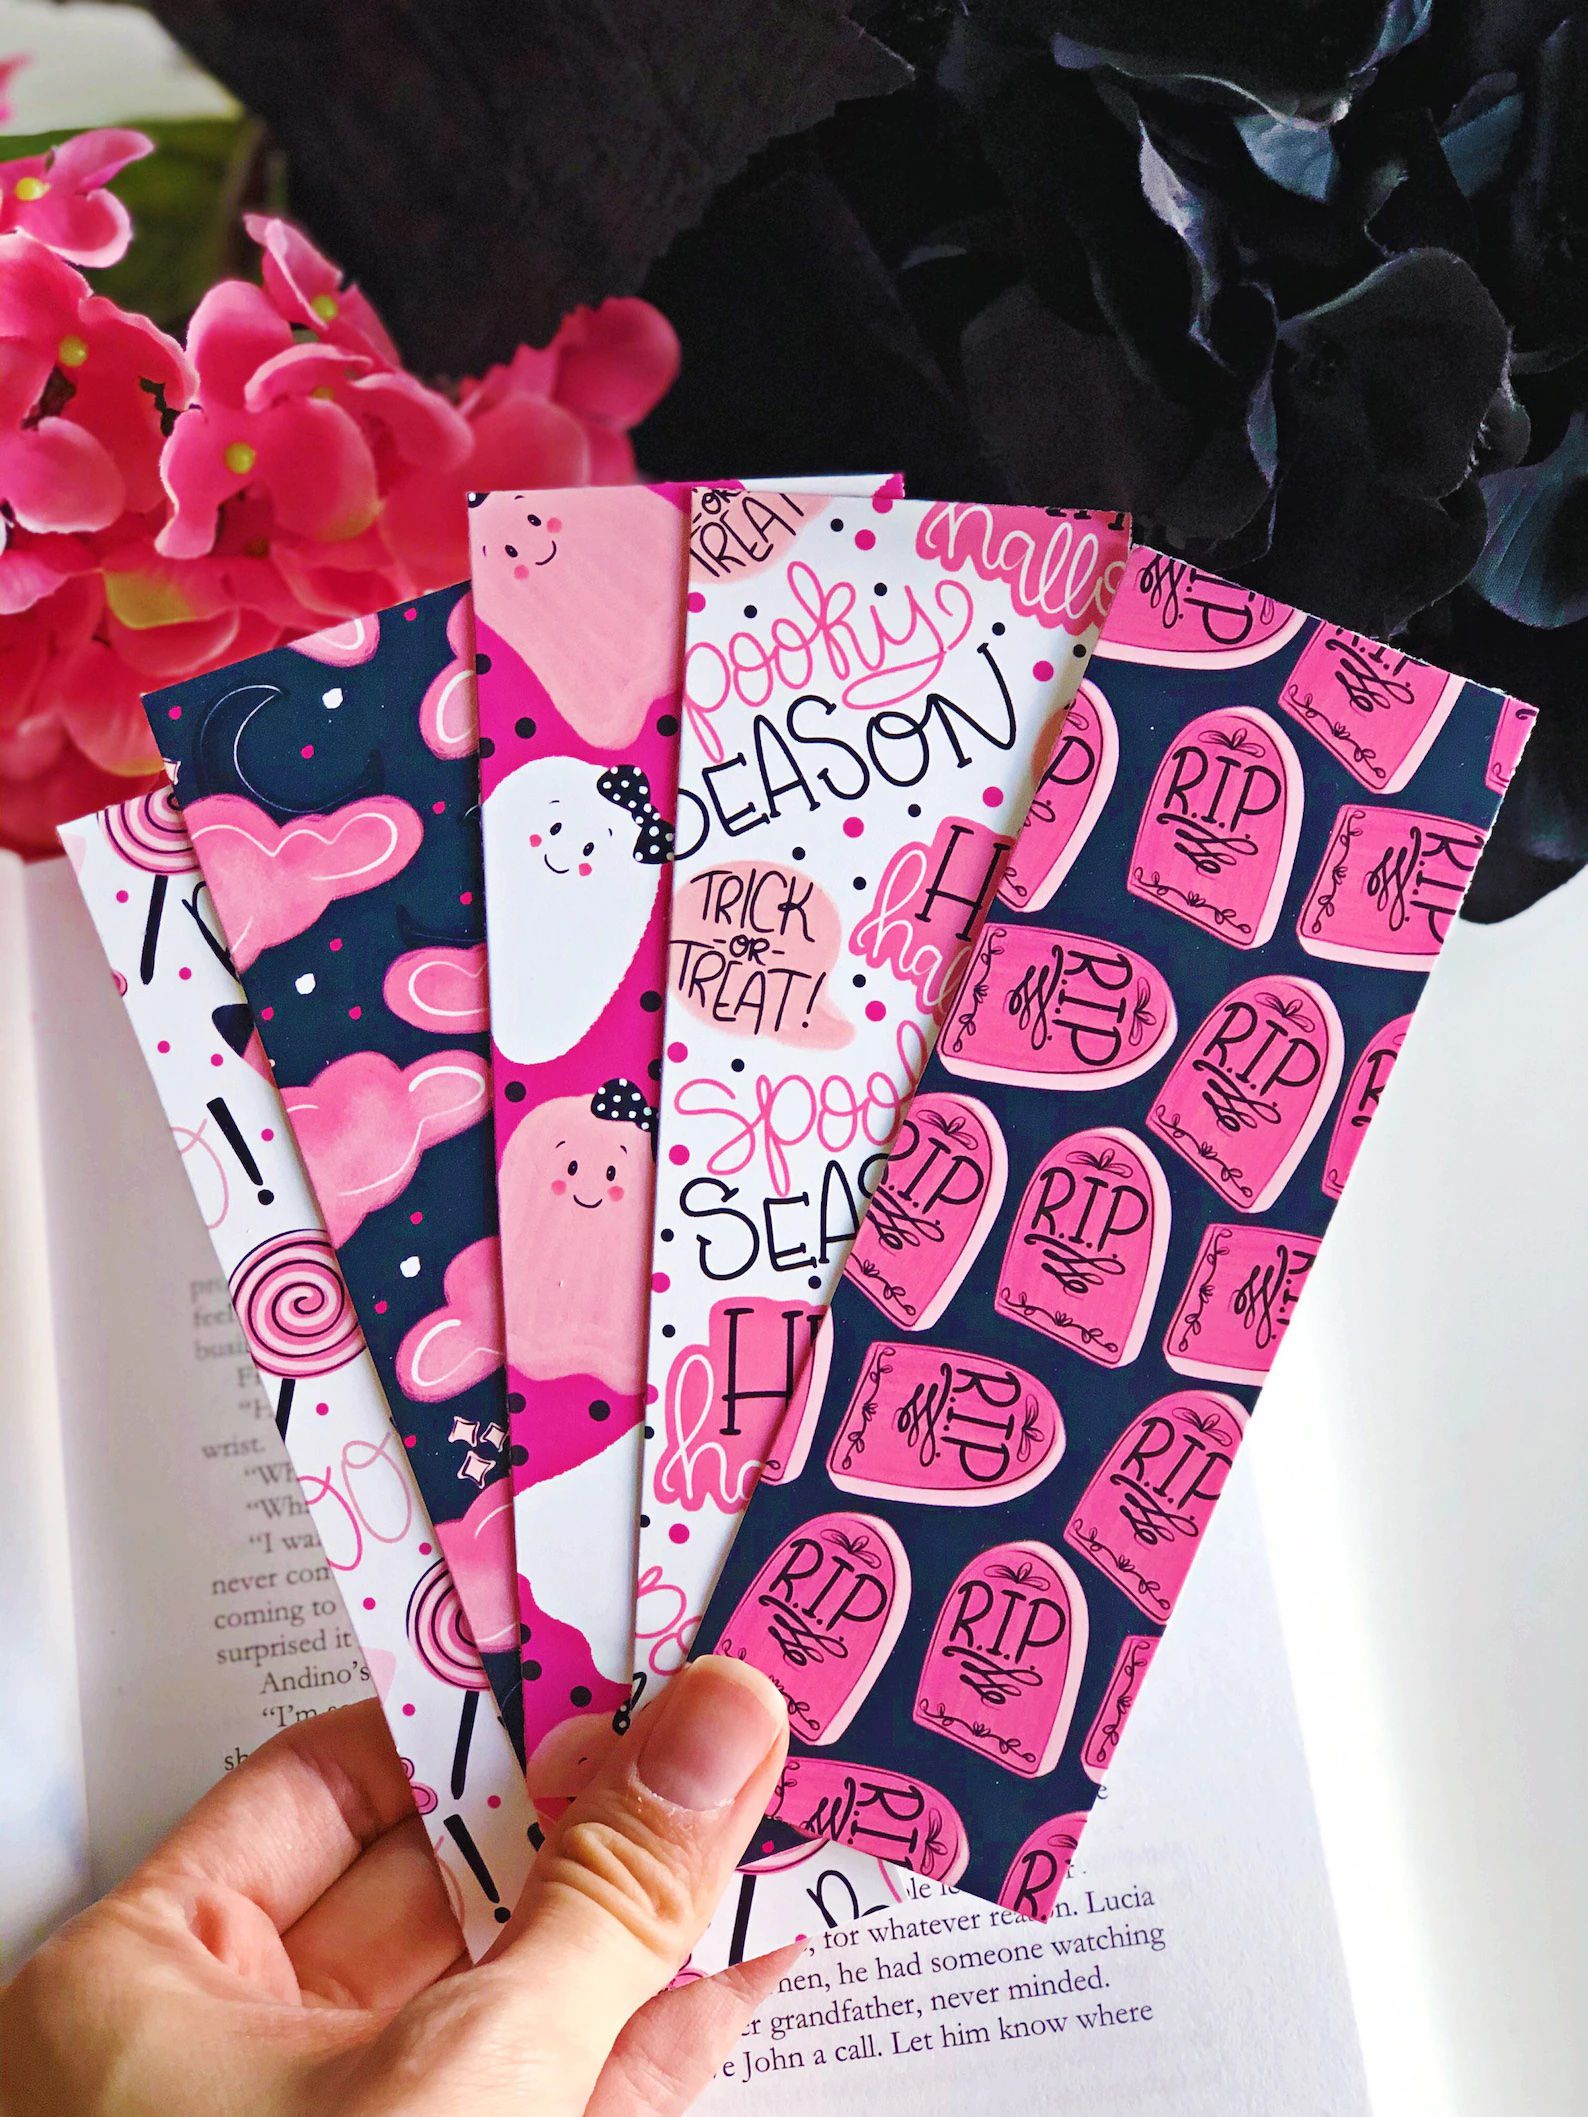 a collection of five pink, white, and navy blue bookmarks with spooky season and ghost motifs